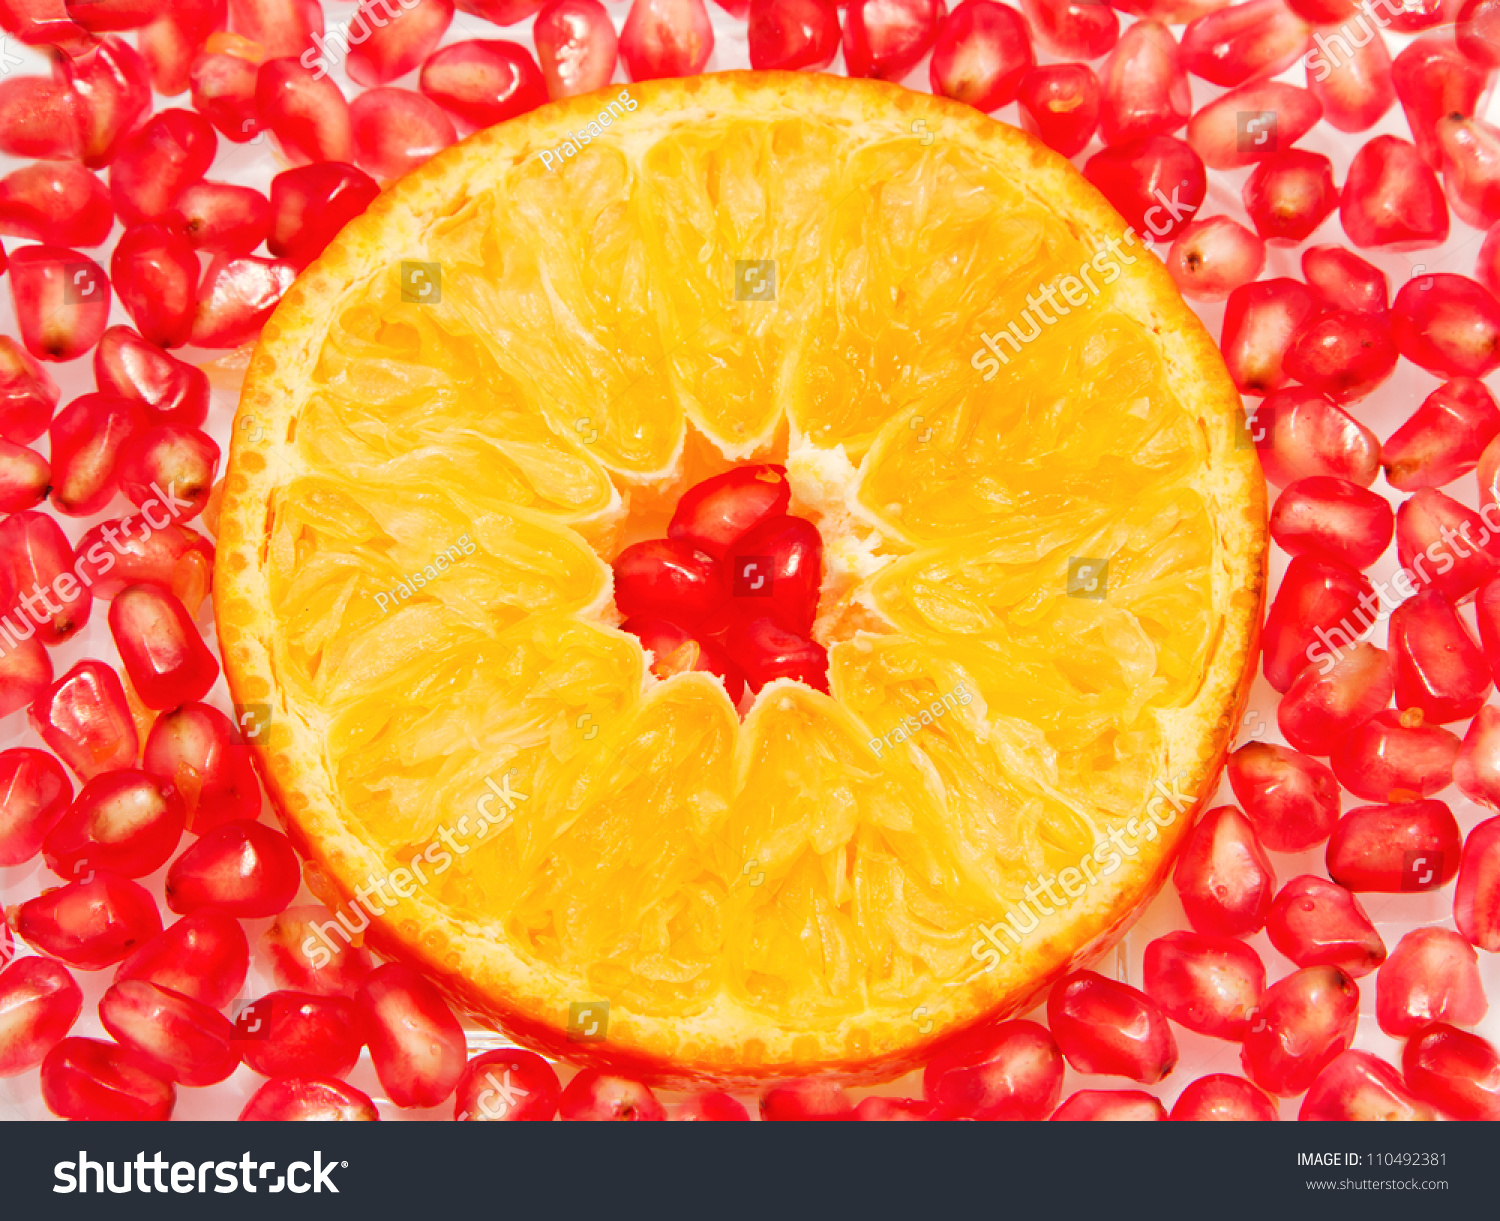 Orange Slices And Pomegranate Seed Isolated On White Background Stock ...